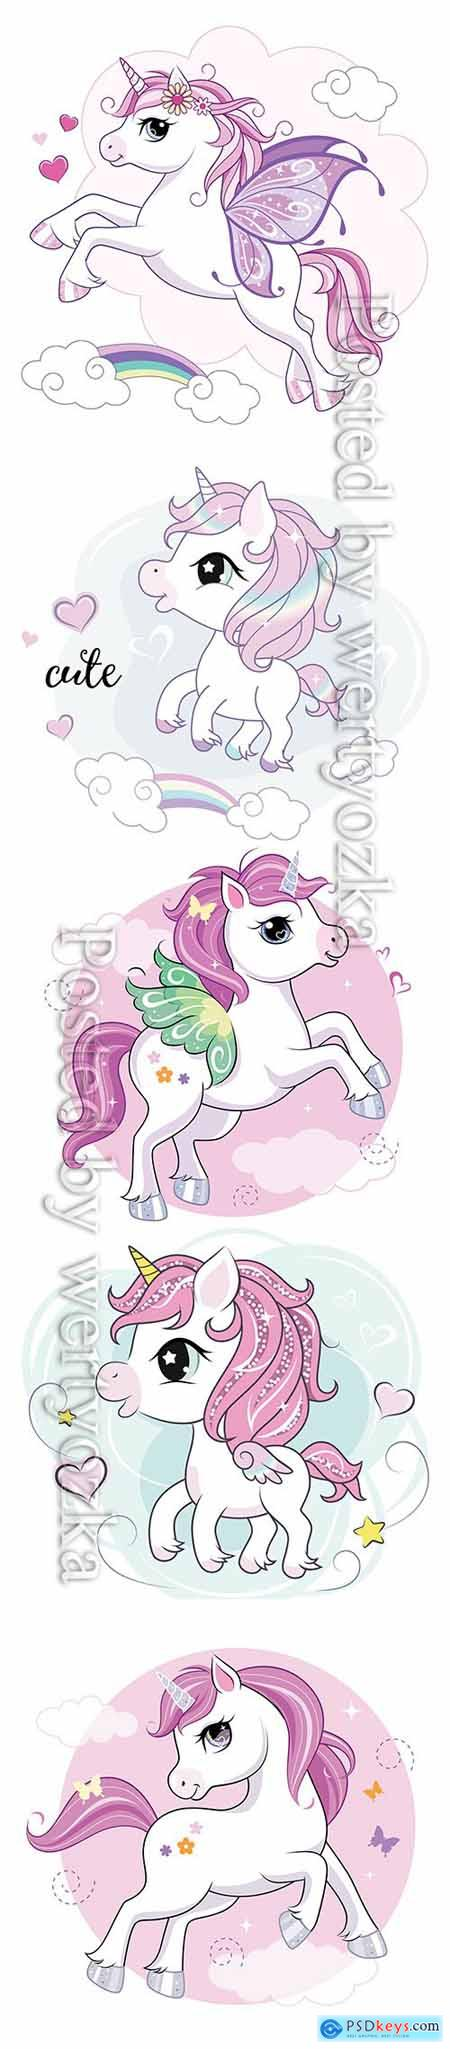 Cute little unicorn character on mint colored background